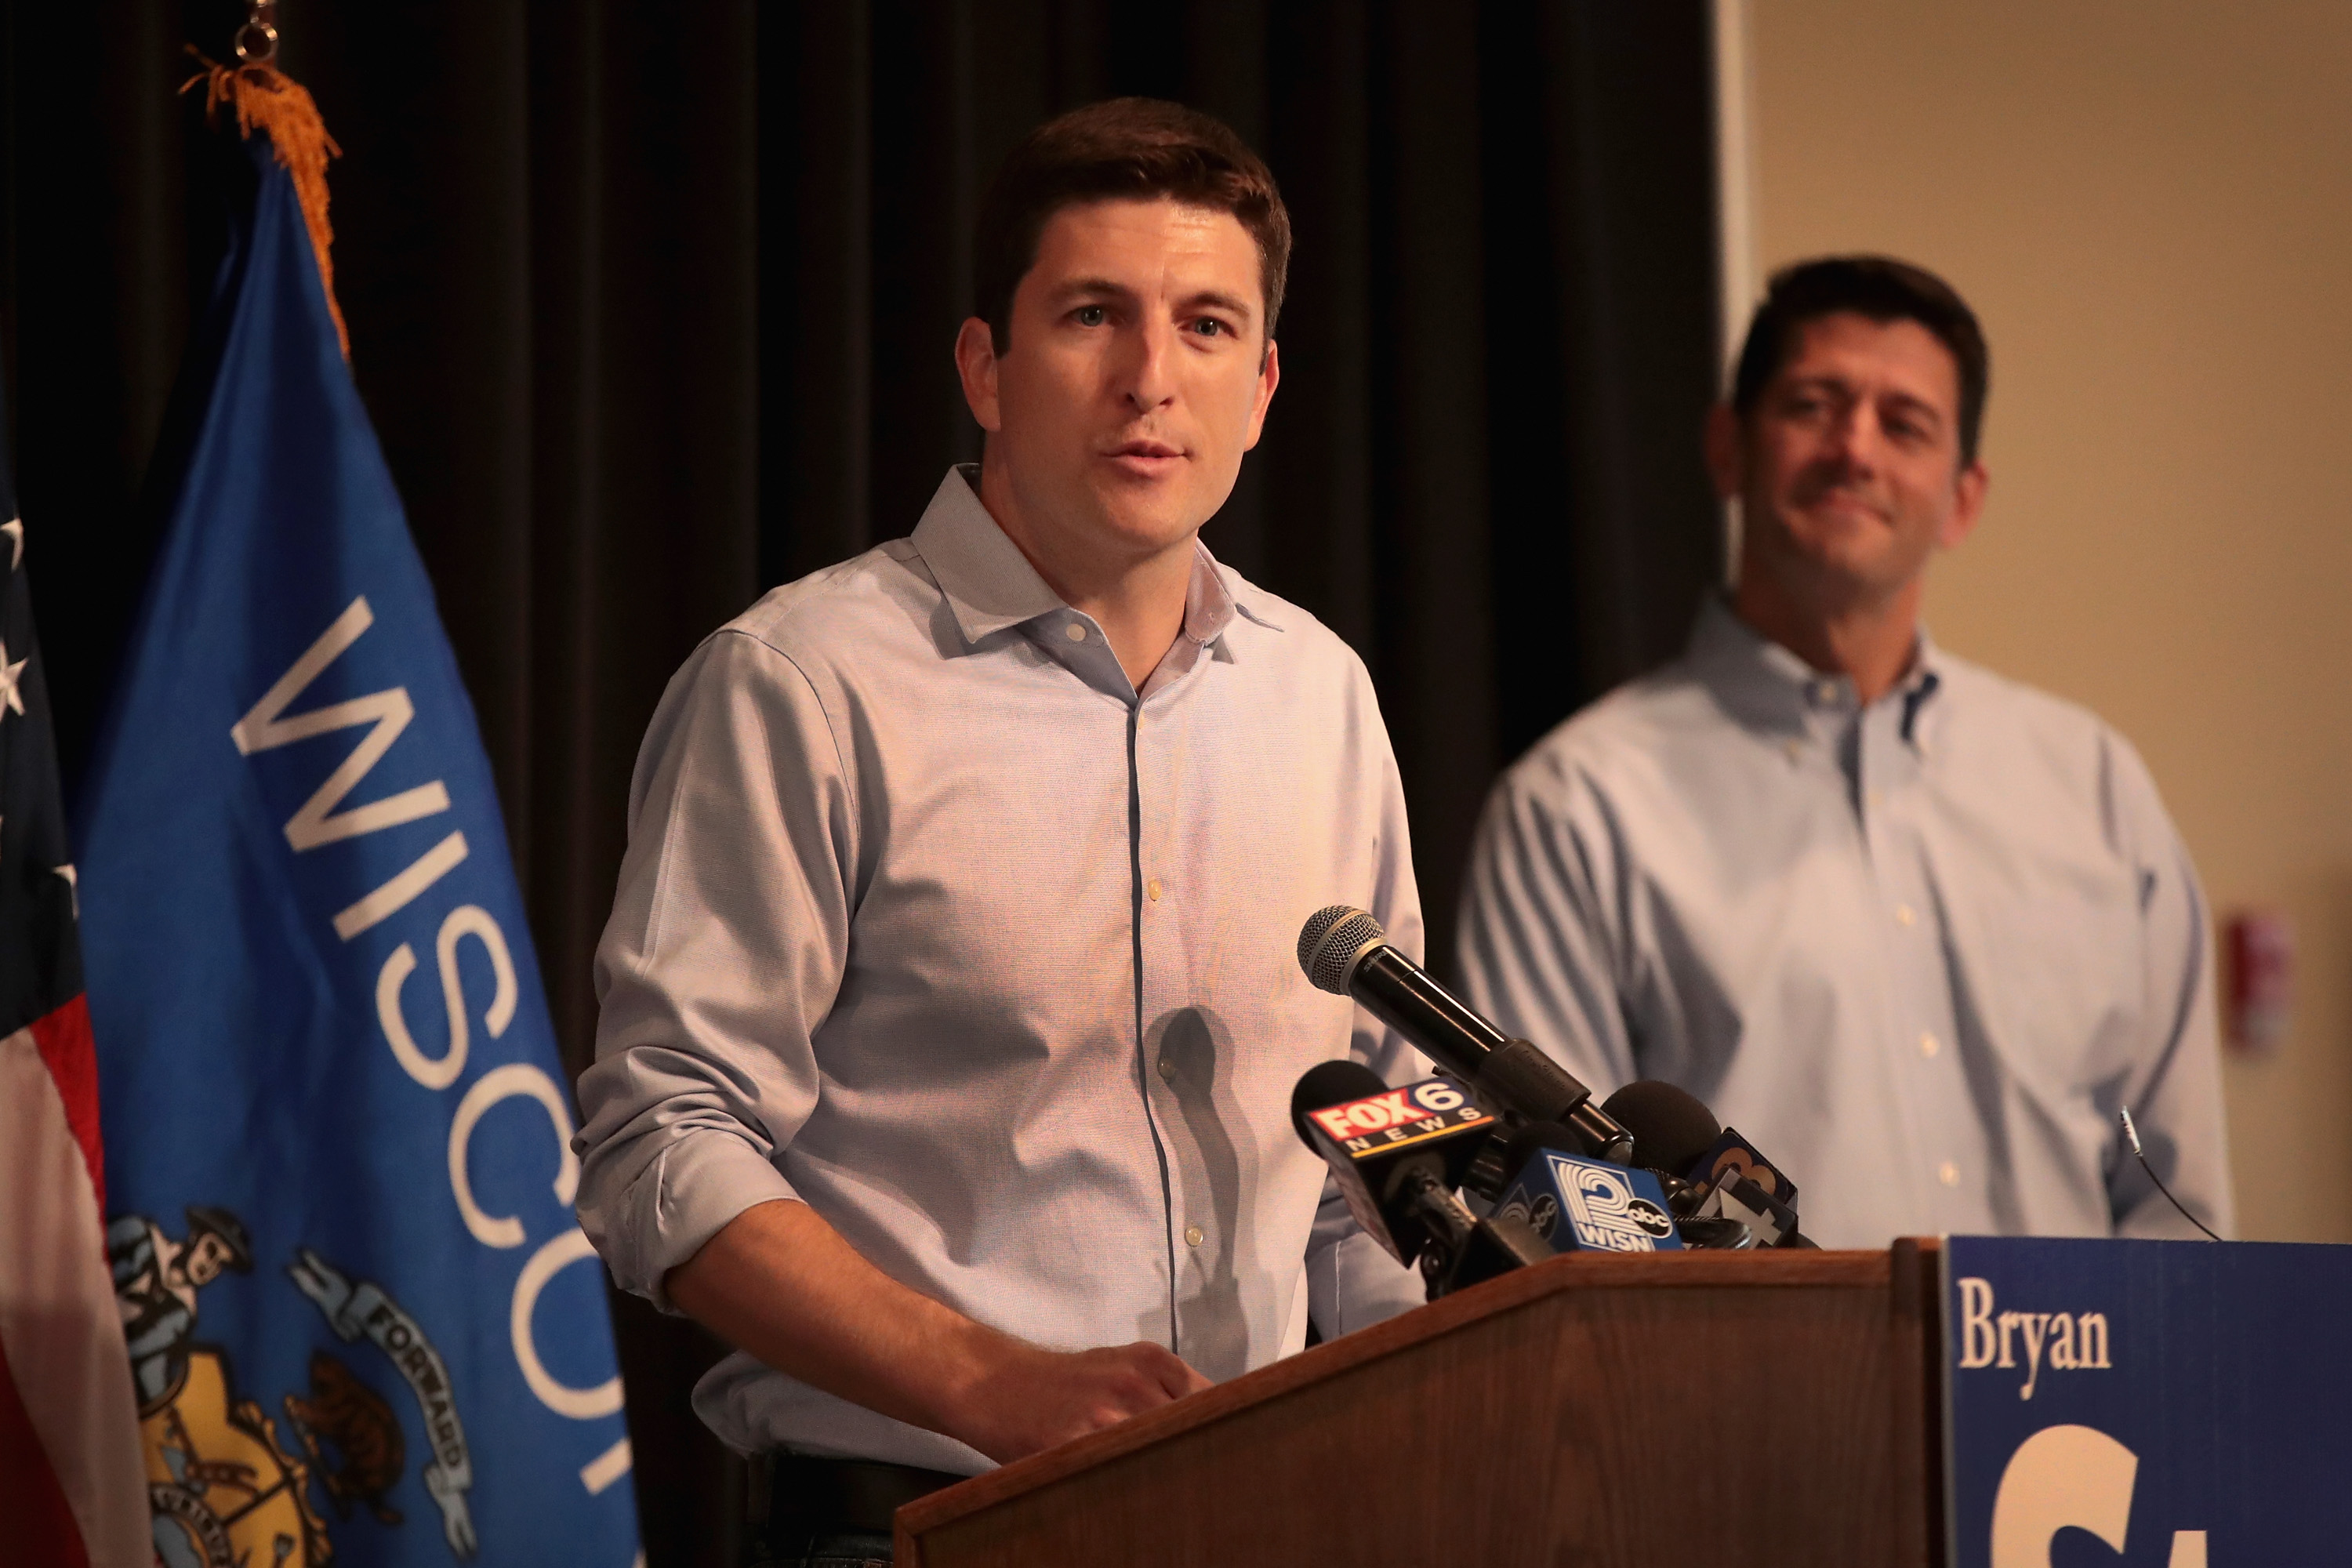 BURLINGTON, WI - AUGUST 13: Speaker of the House Paul Ryan (R) campaigns with Republican congressional candidate Bryan Steil (L) at a rally on August 13, 2018 in Burlington, Wisconsin. Ryan has endorsed Steil in the GOP primary which will be held tomorrow. Steil is running for Ryan's seat in the House. (Photo by Scott Olson/Getty Images)